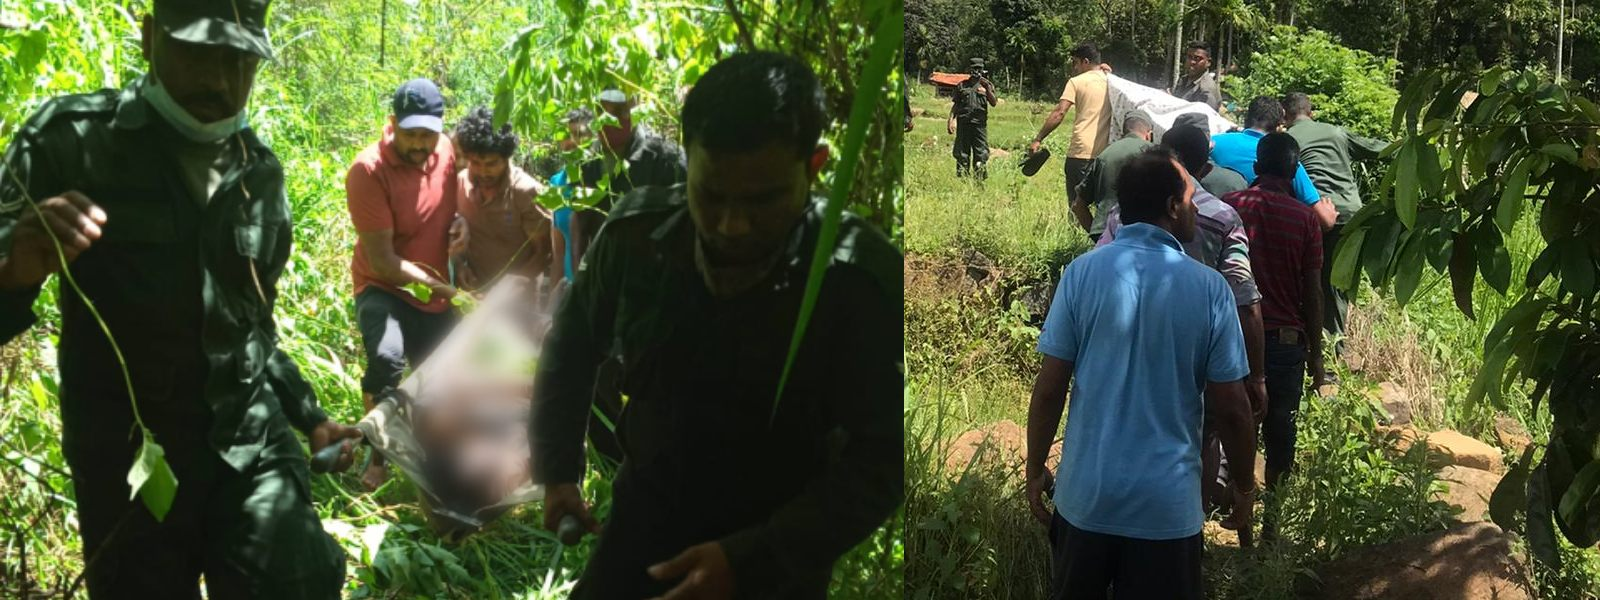 Troops Recover Remains of Missing Father & Son in Haldummulla